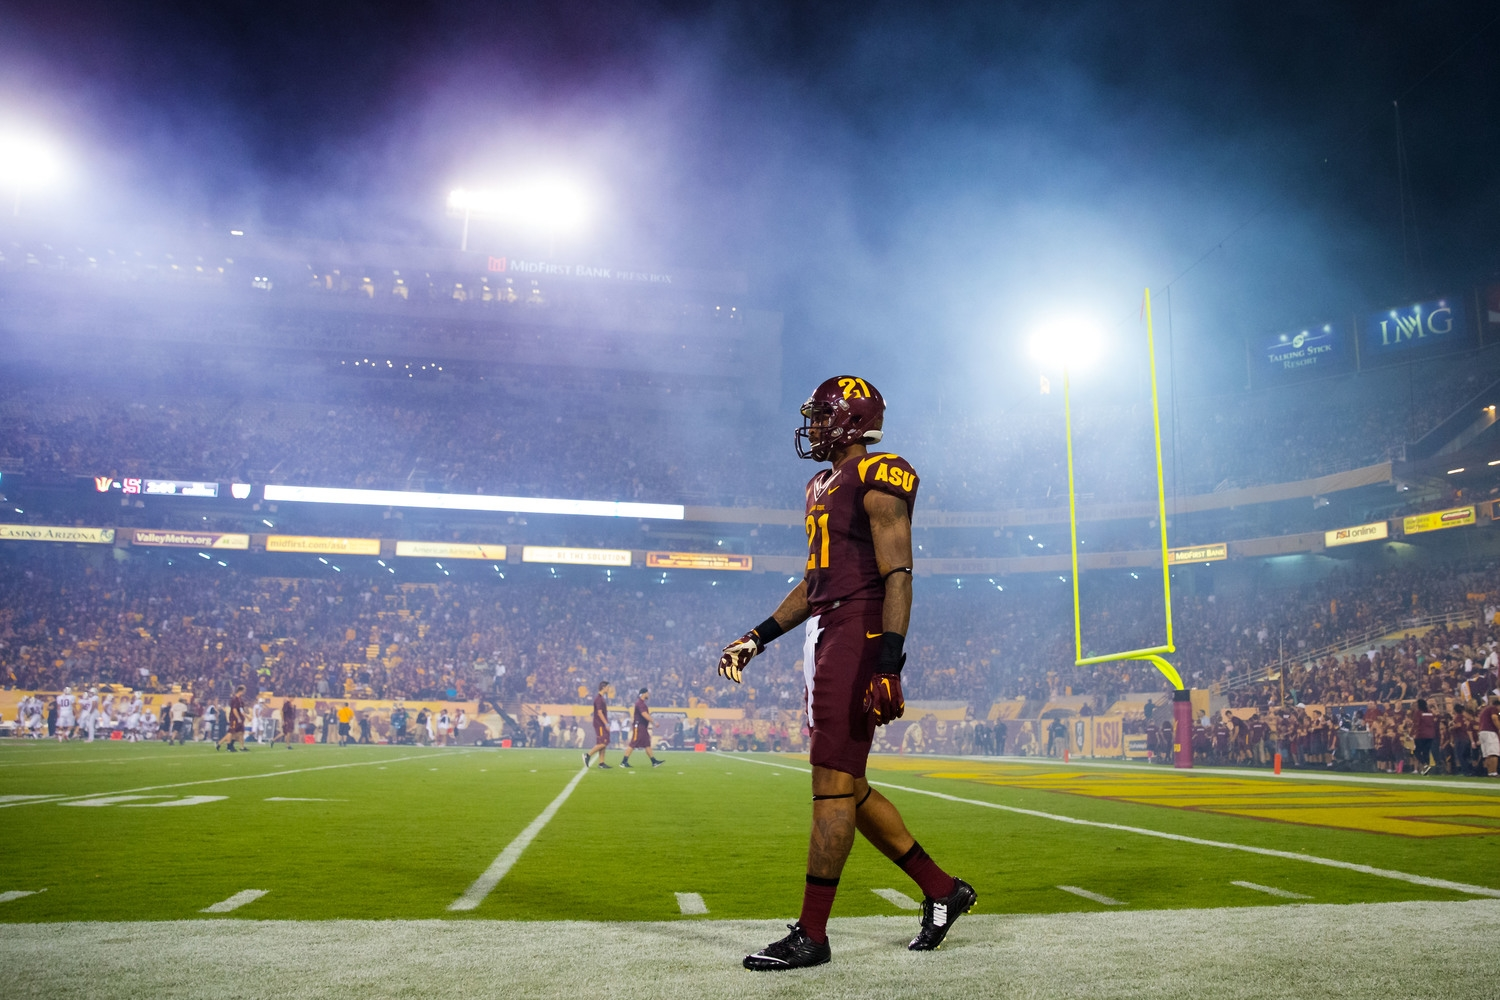 Okay guys, I know they're the Sun Devils and you want to have a cool hell-like atmosphere or whatever, but do you really need to have such an enormous smoke machine budget?